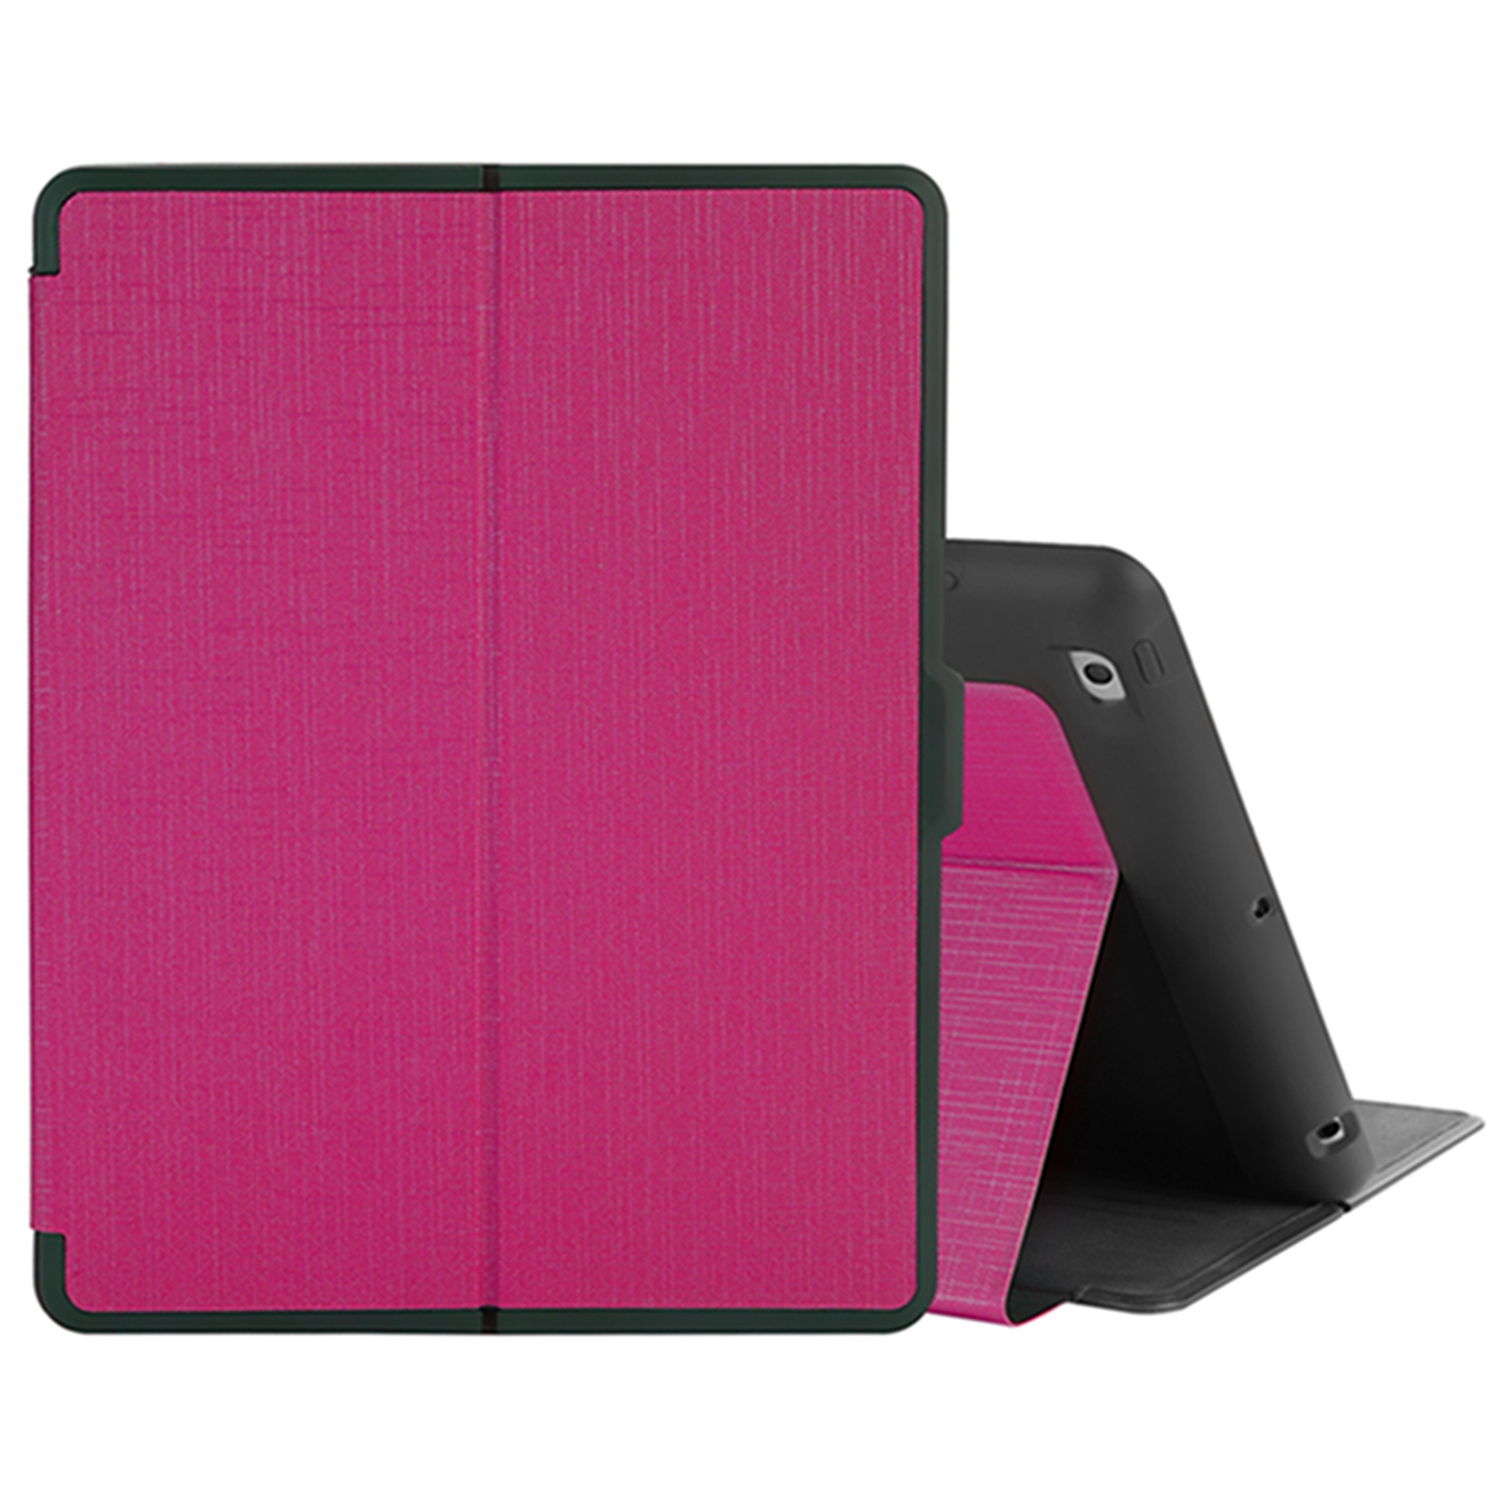 TKOOFN iPad 234 case Hybrid Protective Rugged Shockproof Cover Case for Apple iPad 2 iPad 3 iPad 4[PC + TPU]